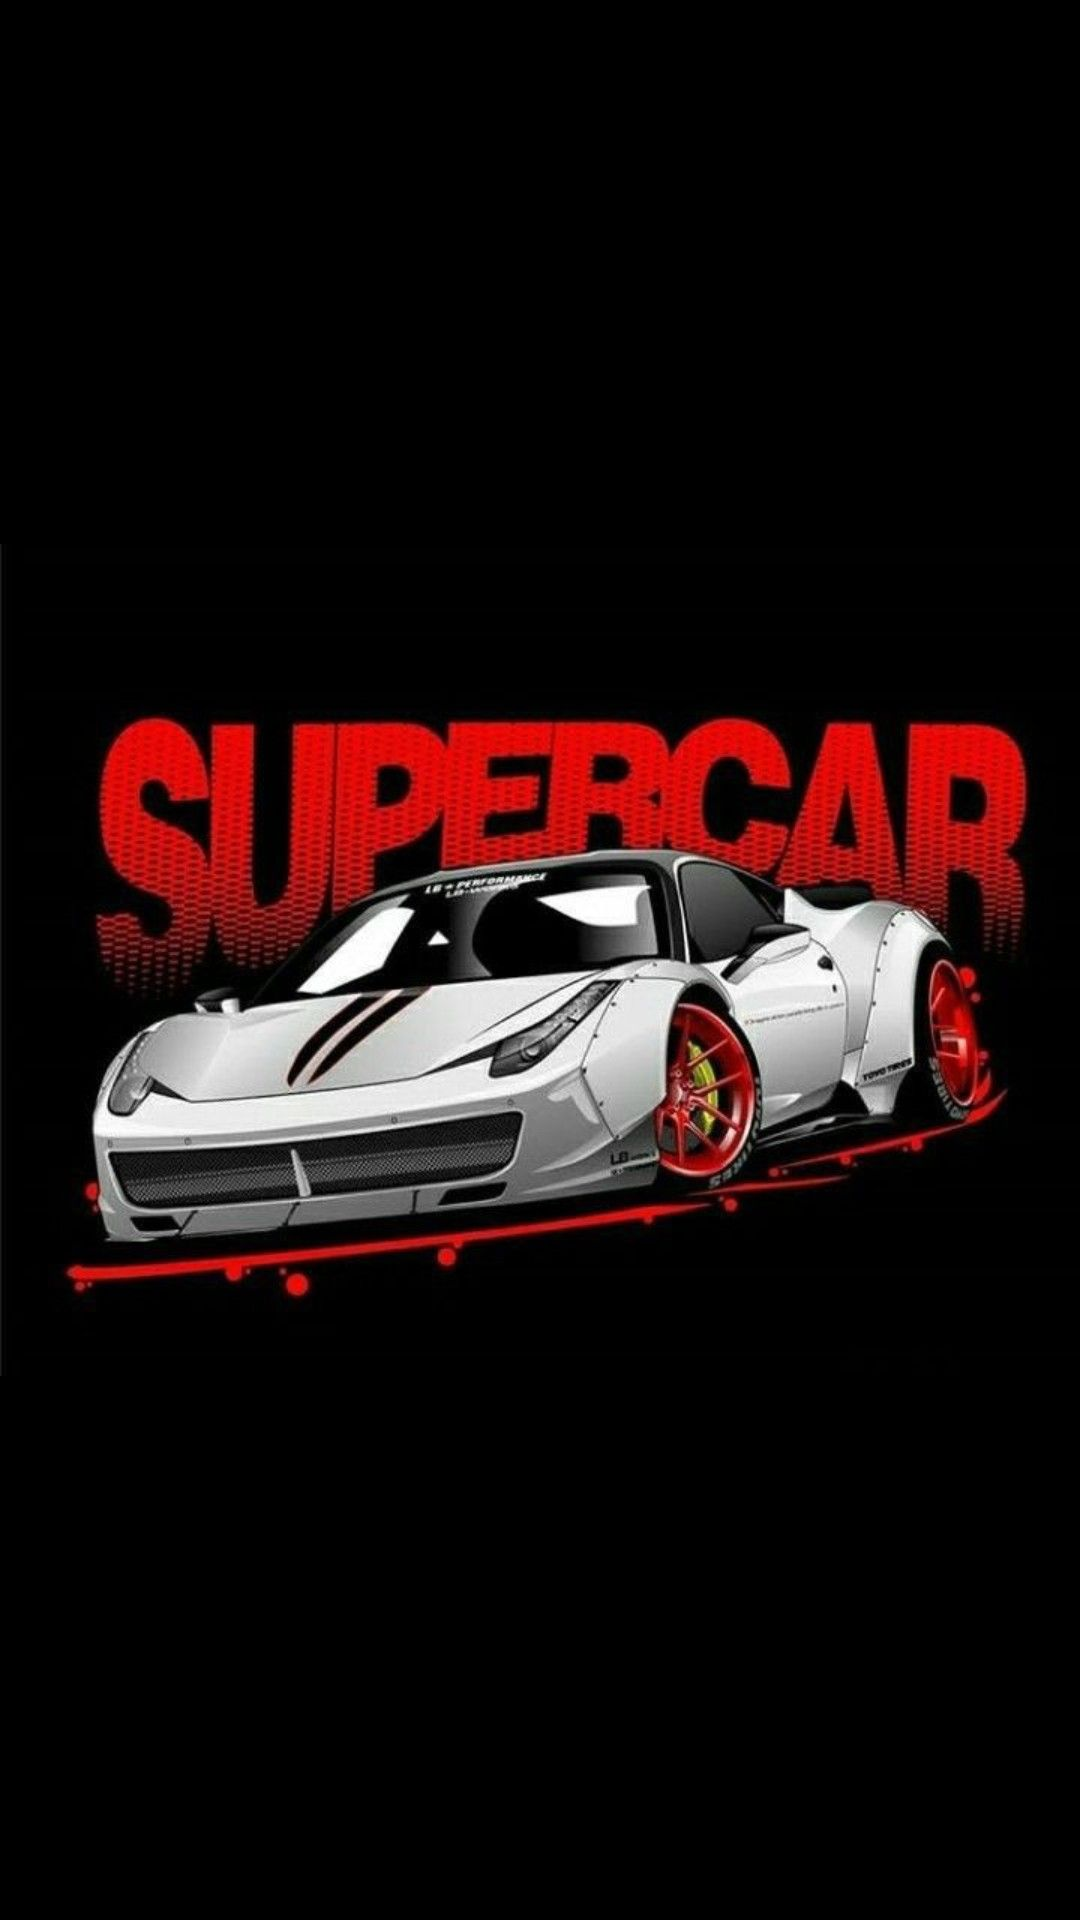 Pin By Fco J On Cars Illustrations With Images Art Cars Car